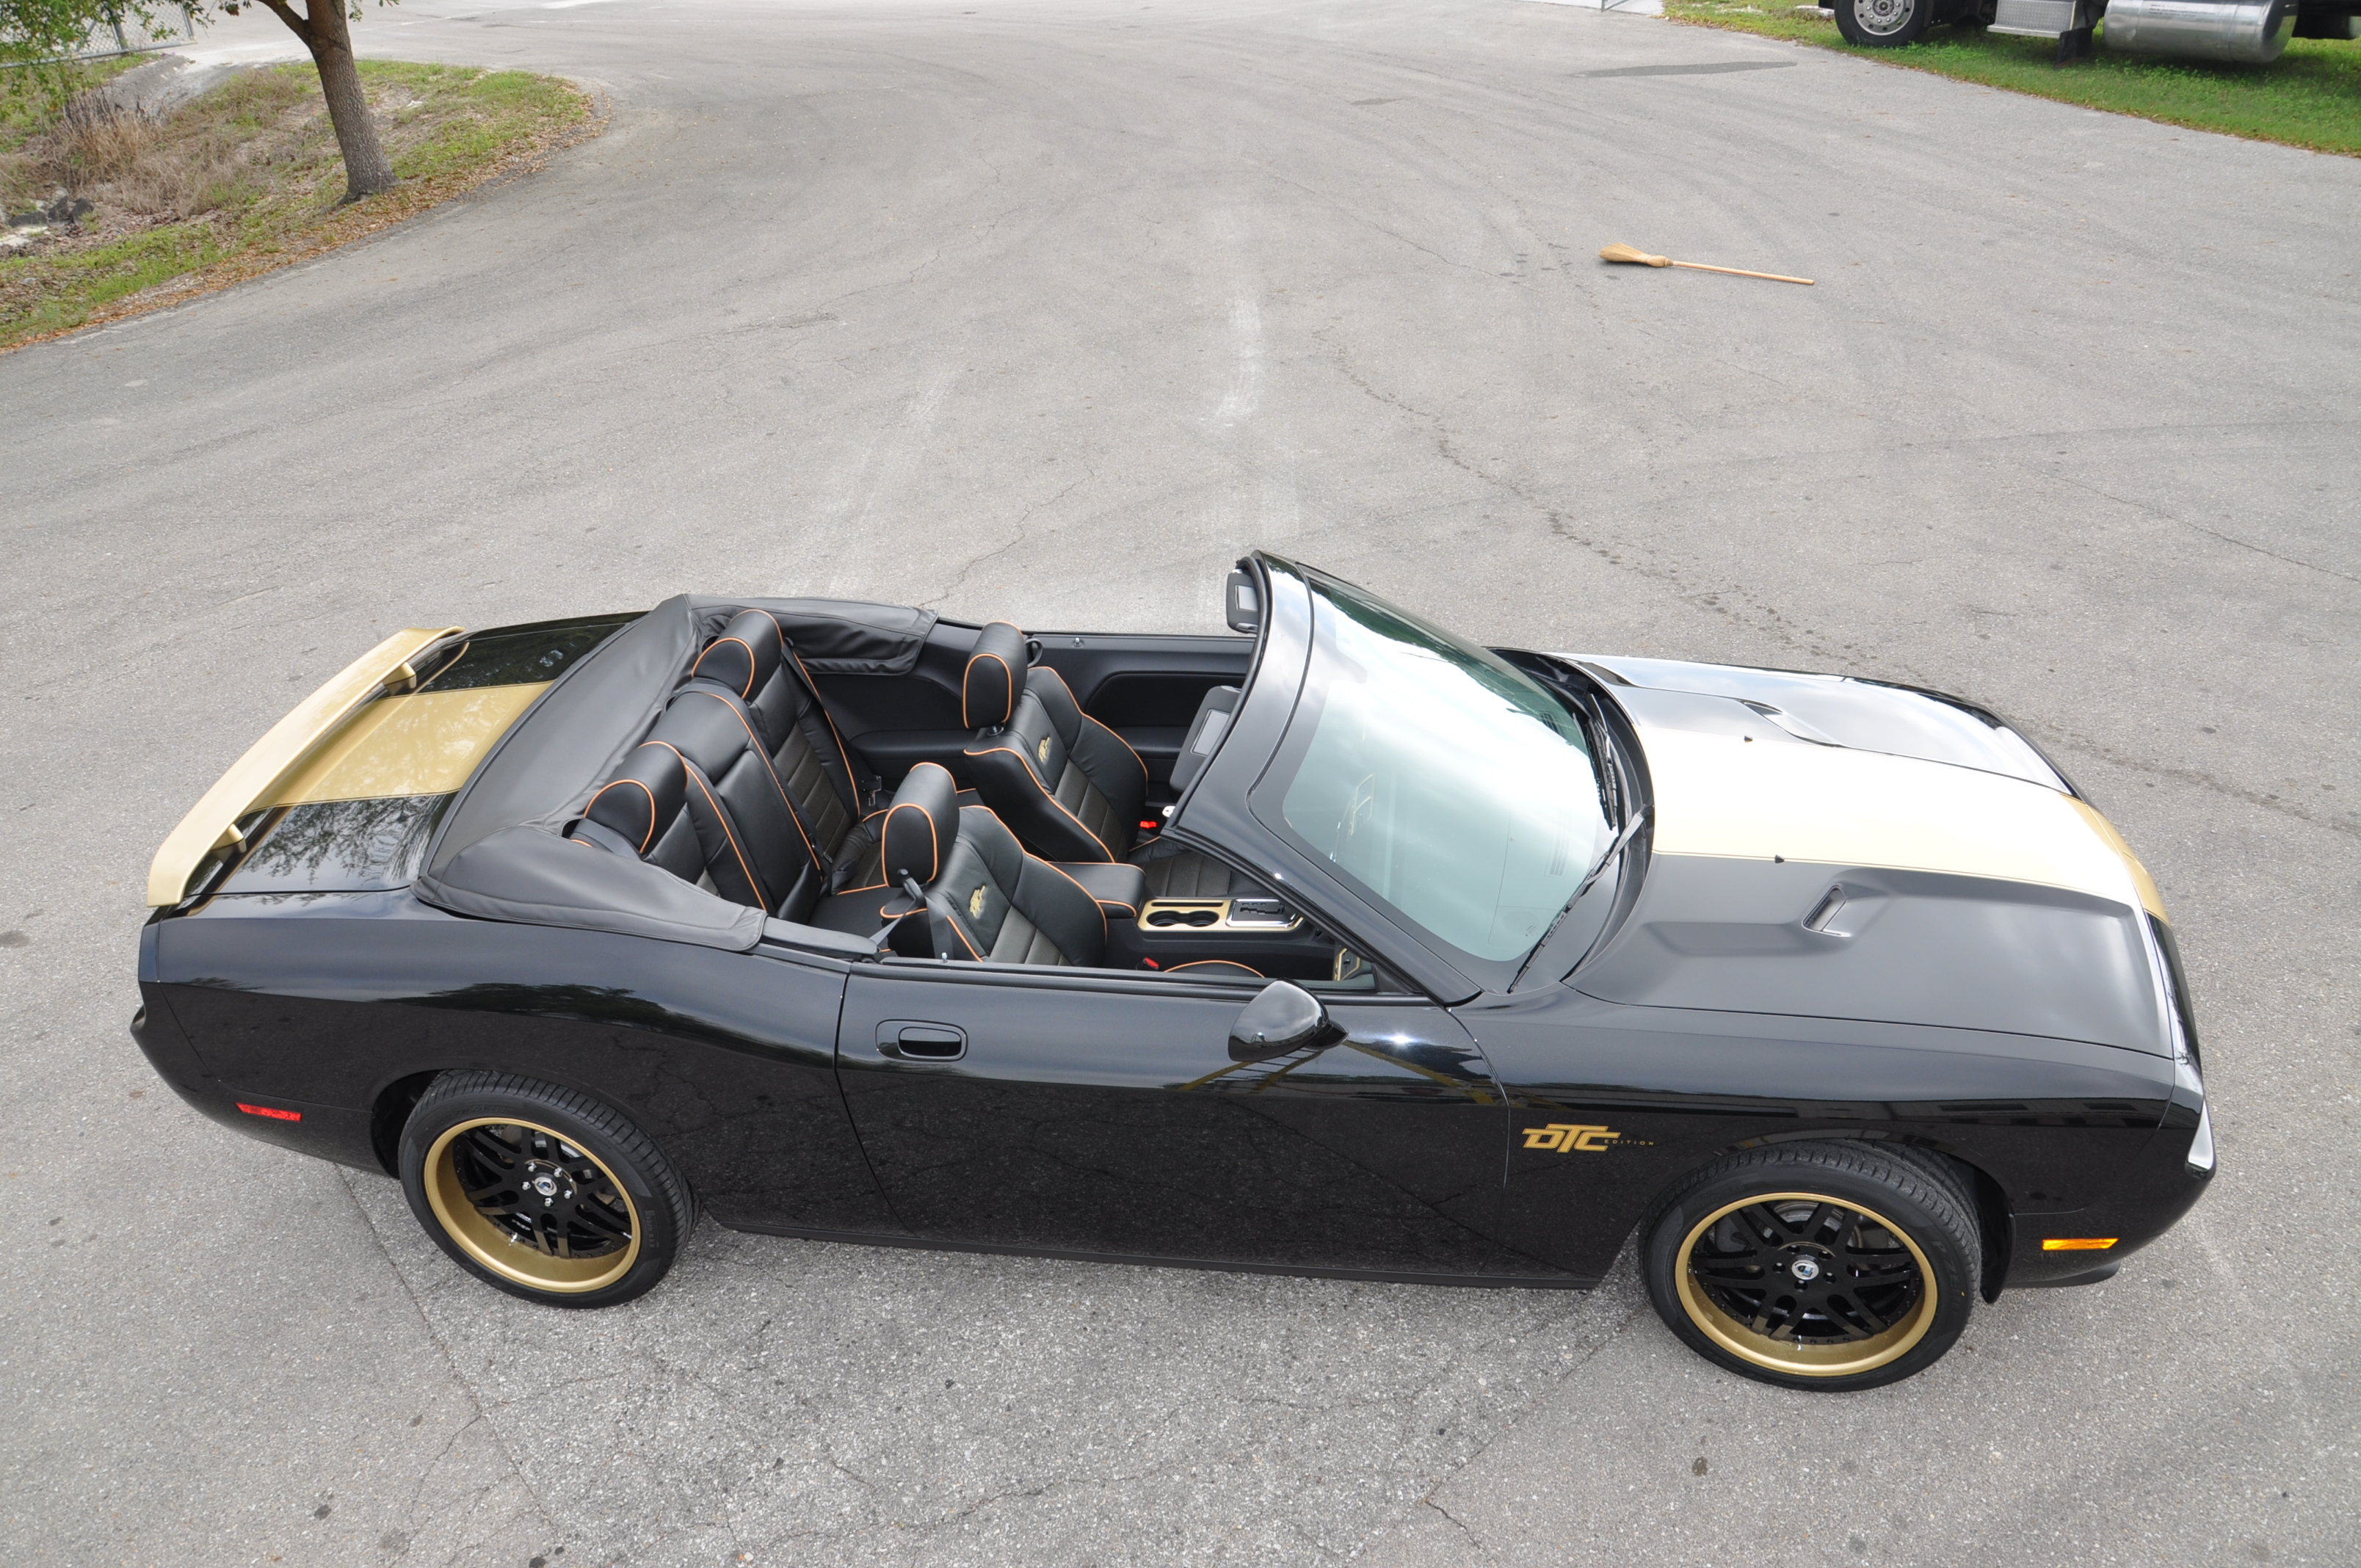 Black and Gold Dodge Challenger Convertible